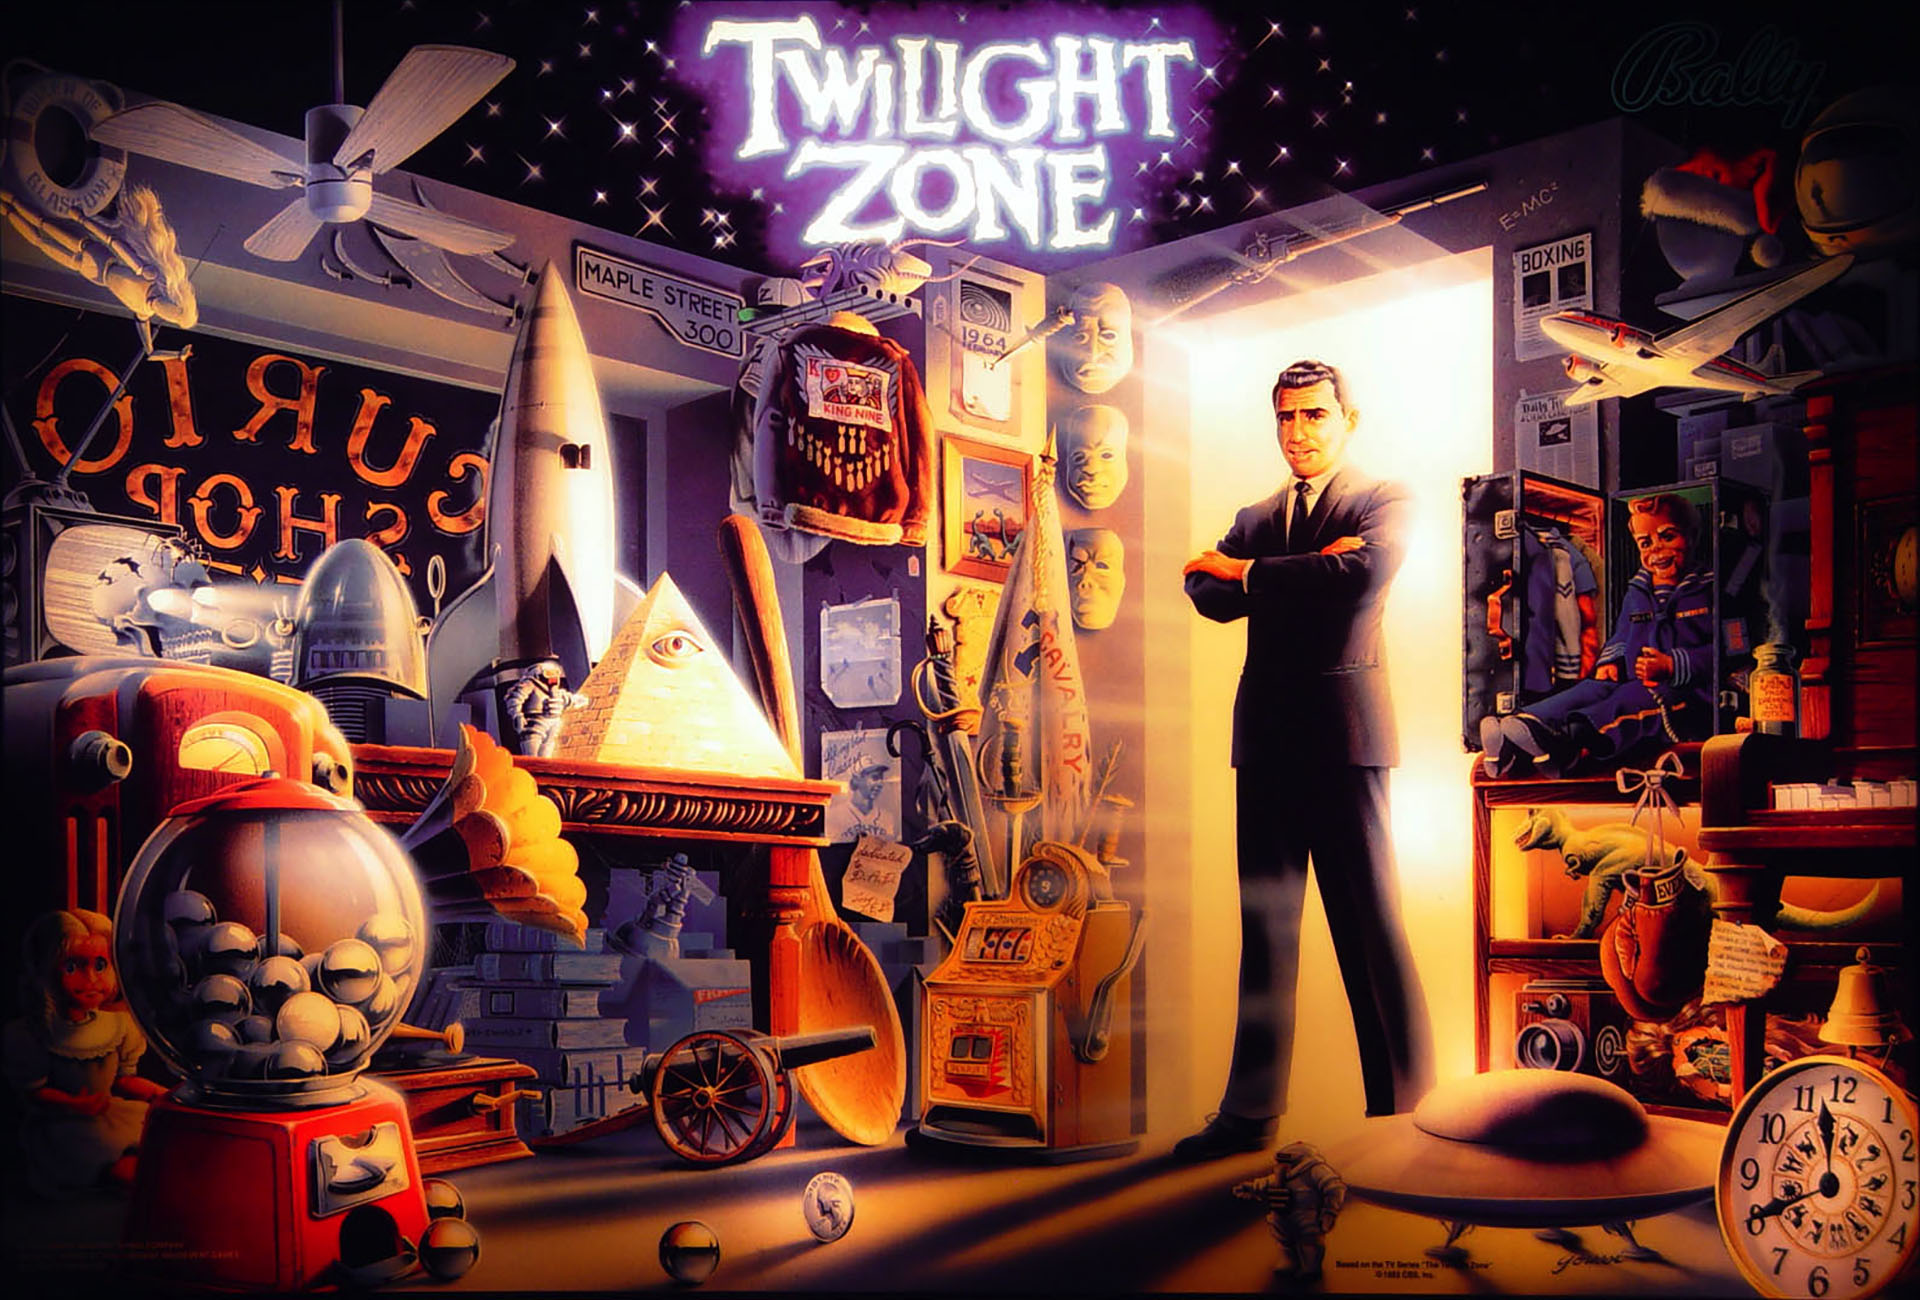 Twilight Zone Art